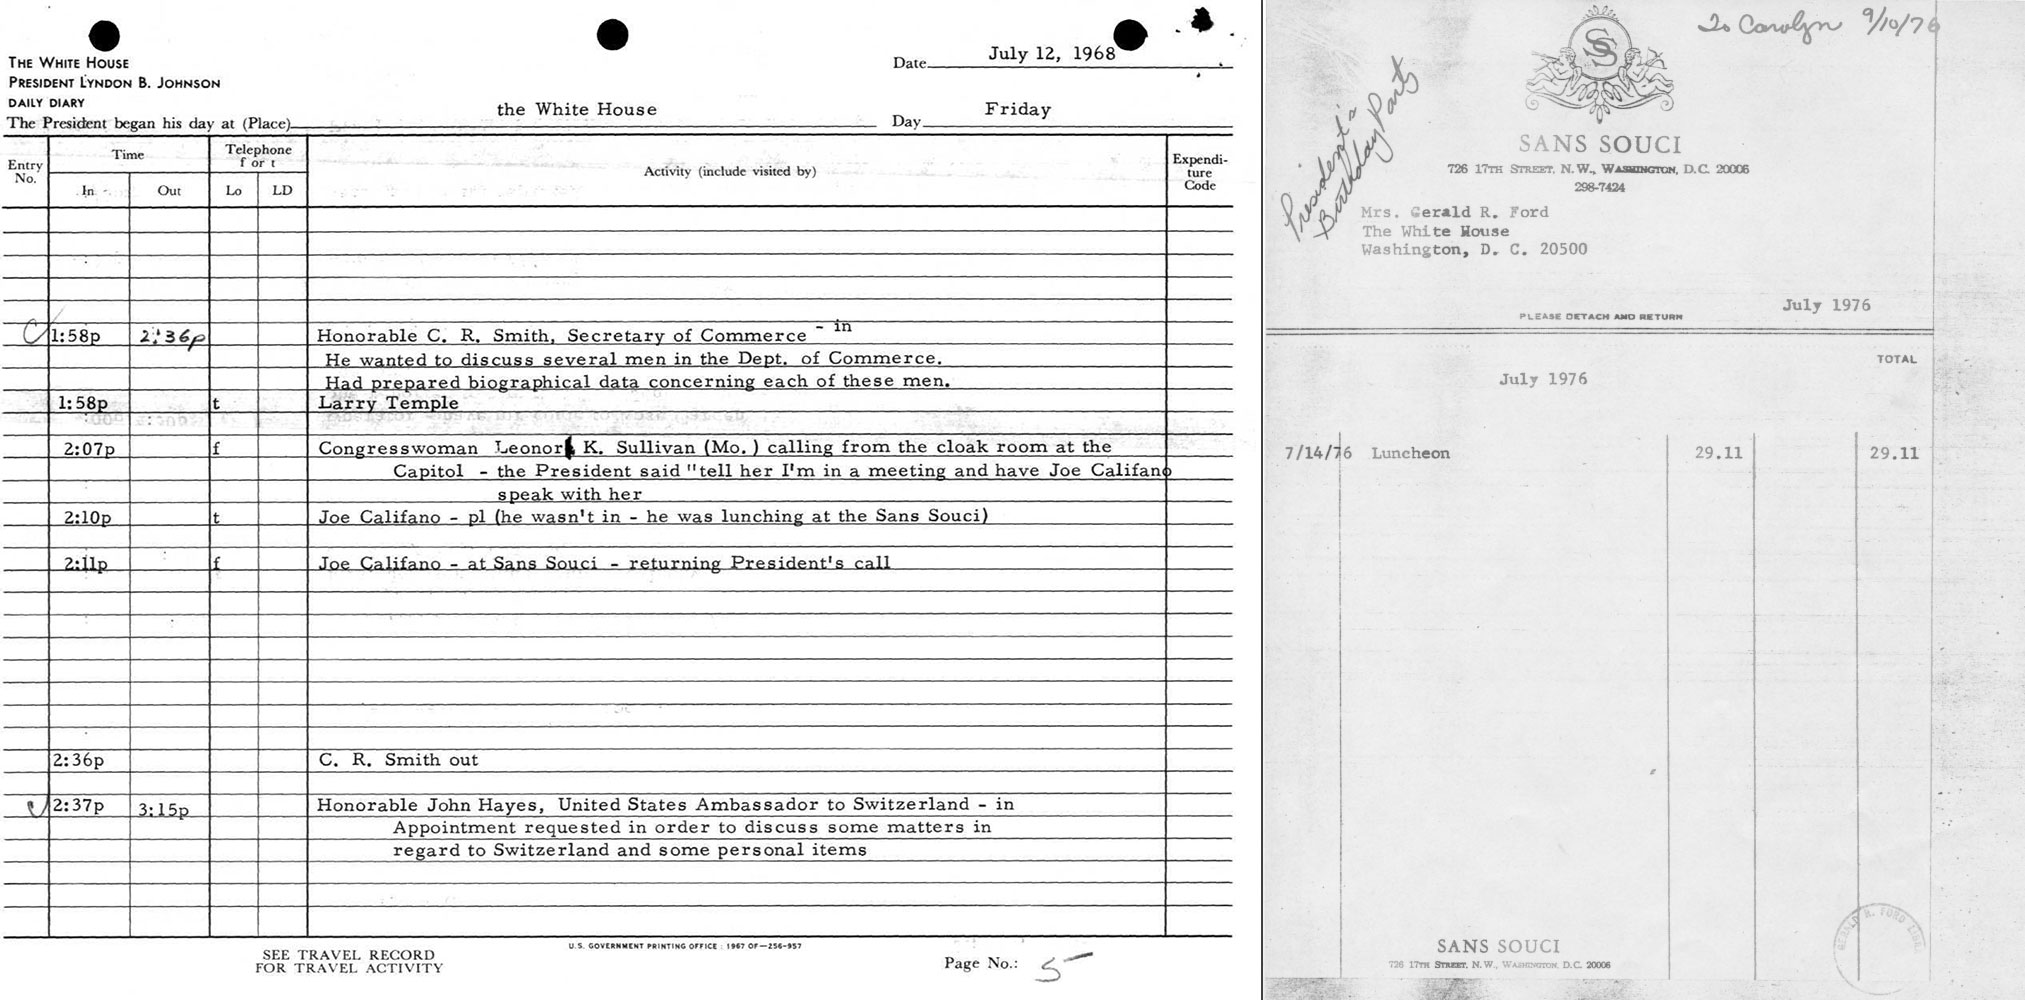 Documents courtesy of Gerald R. Ford Presidential Library and Lyndon B. Johnson Presidential Library.